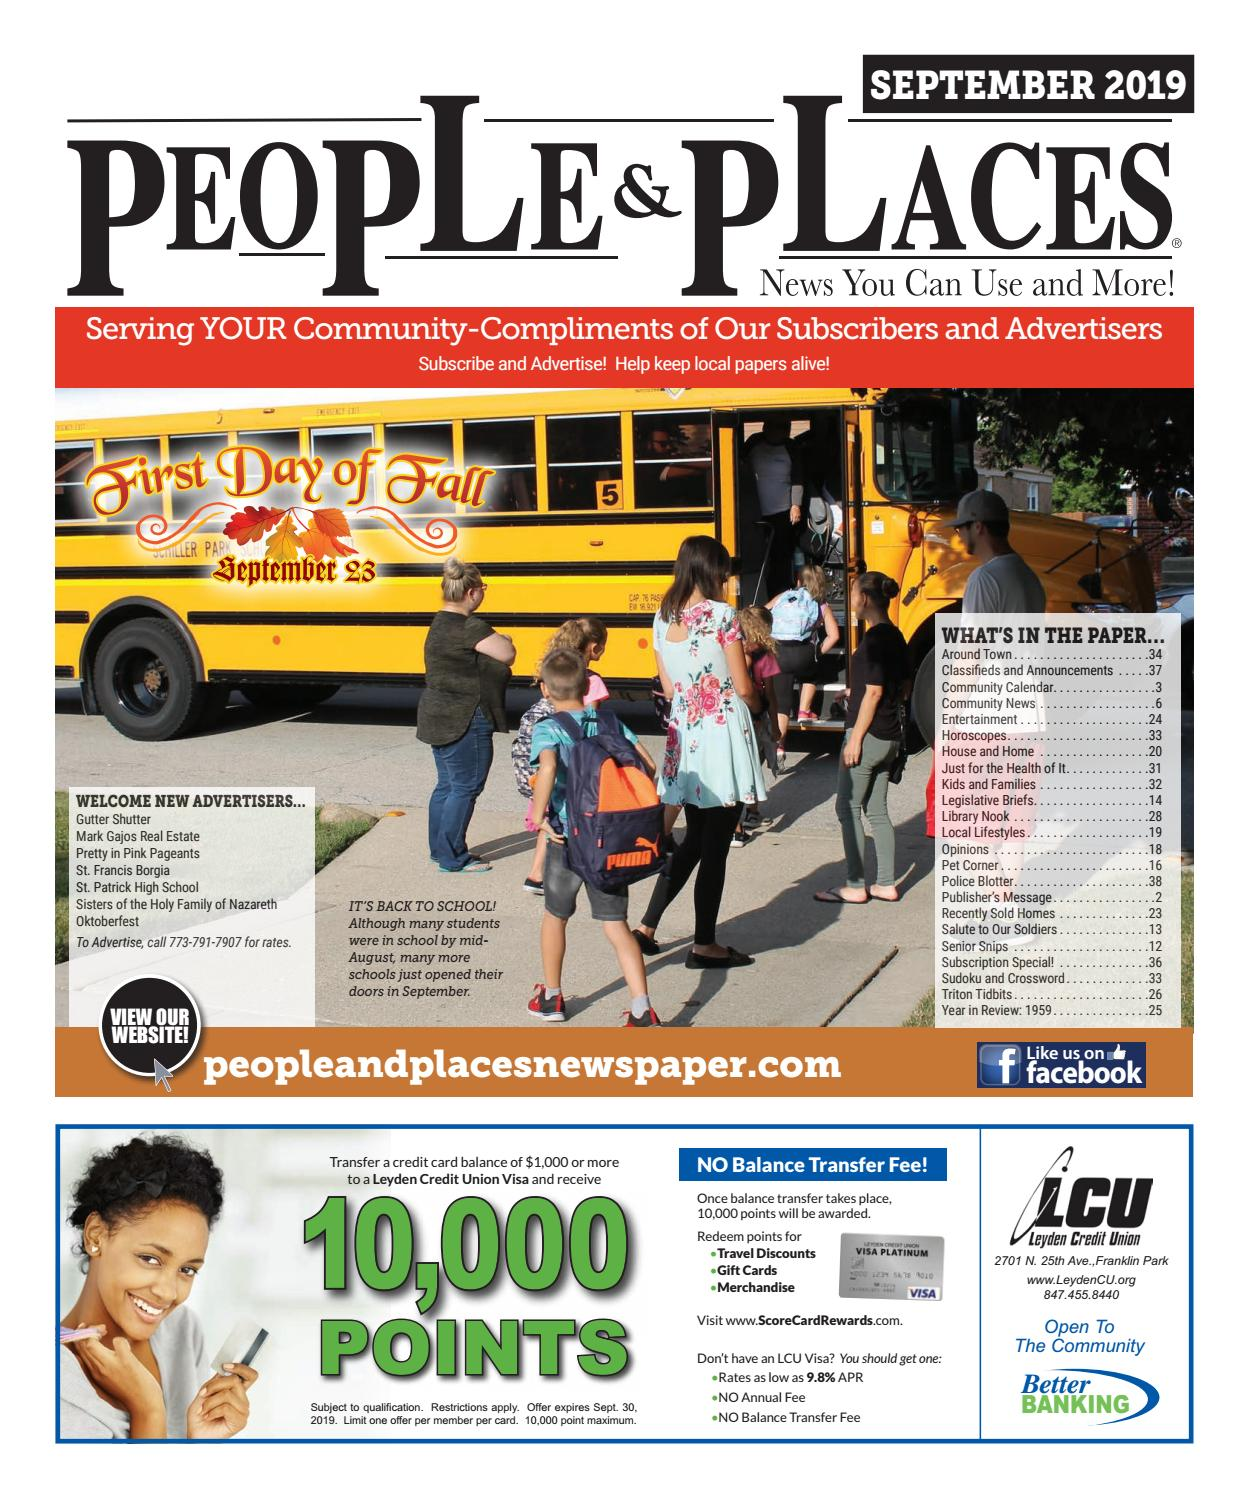 September 2019 People & Places Newspaper by Jennifer